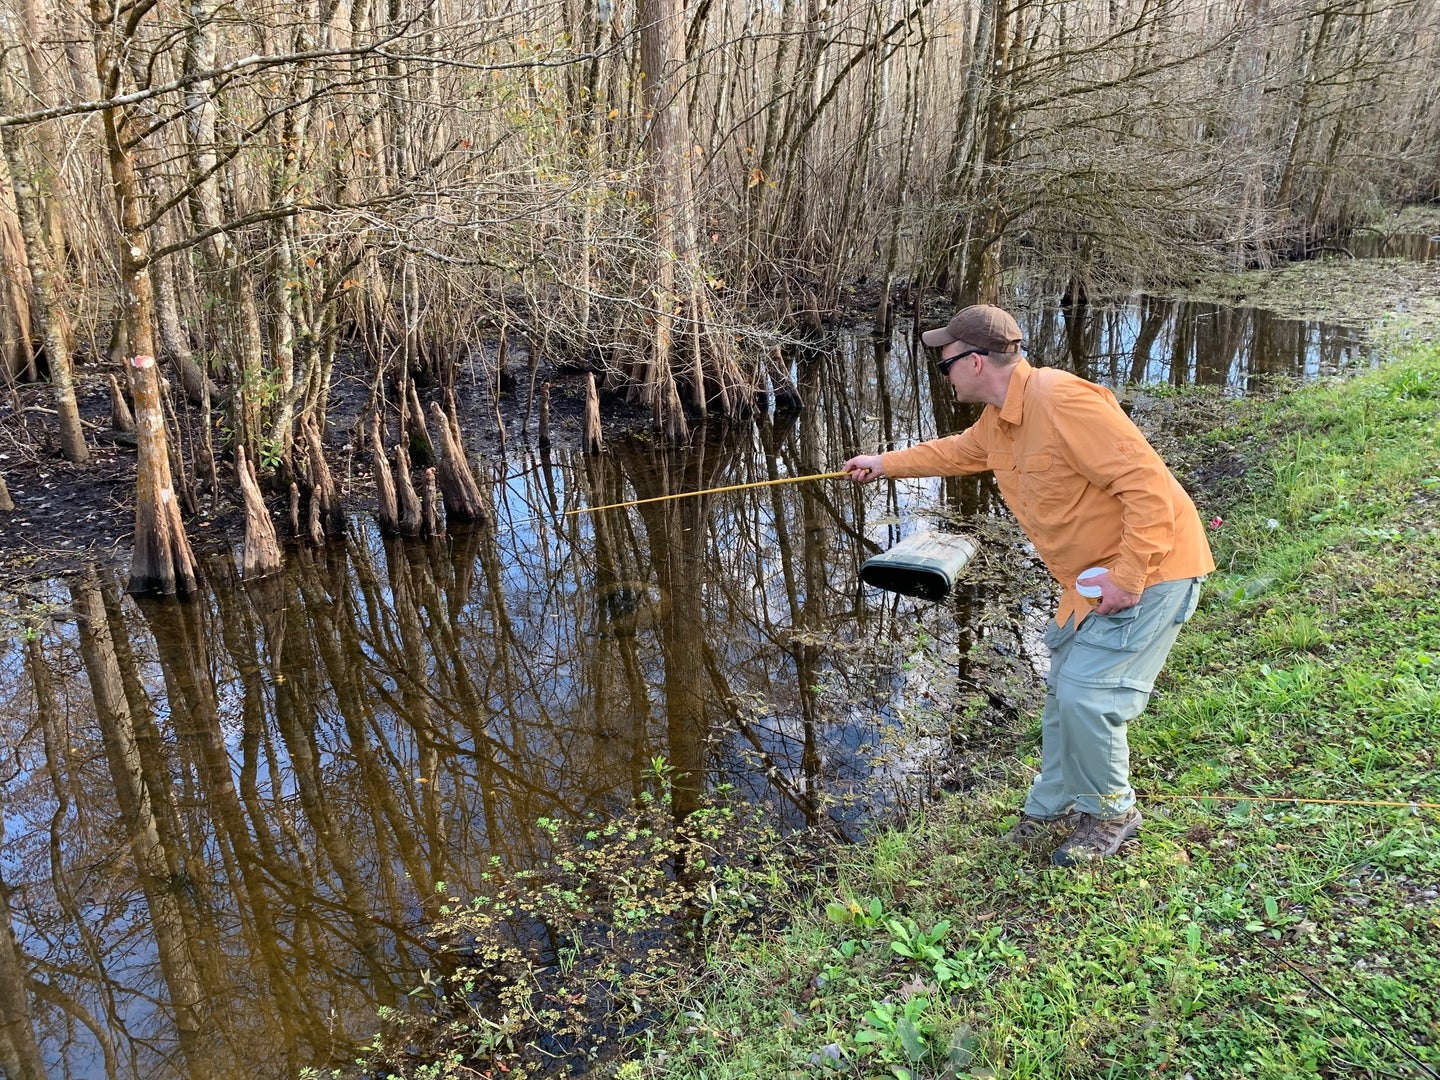 an angler fishing in a small ditch